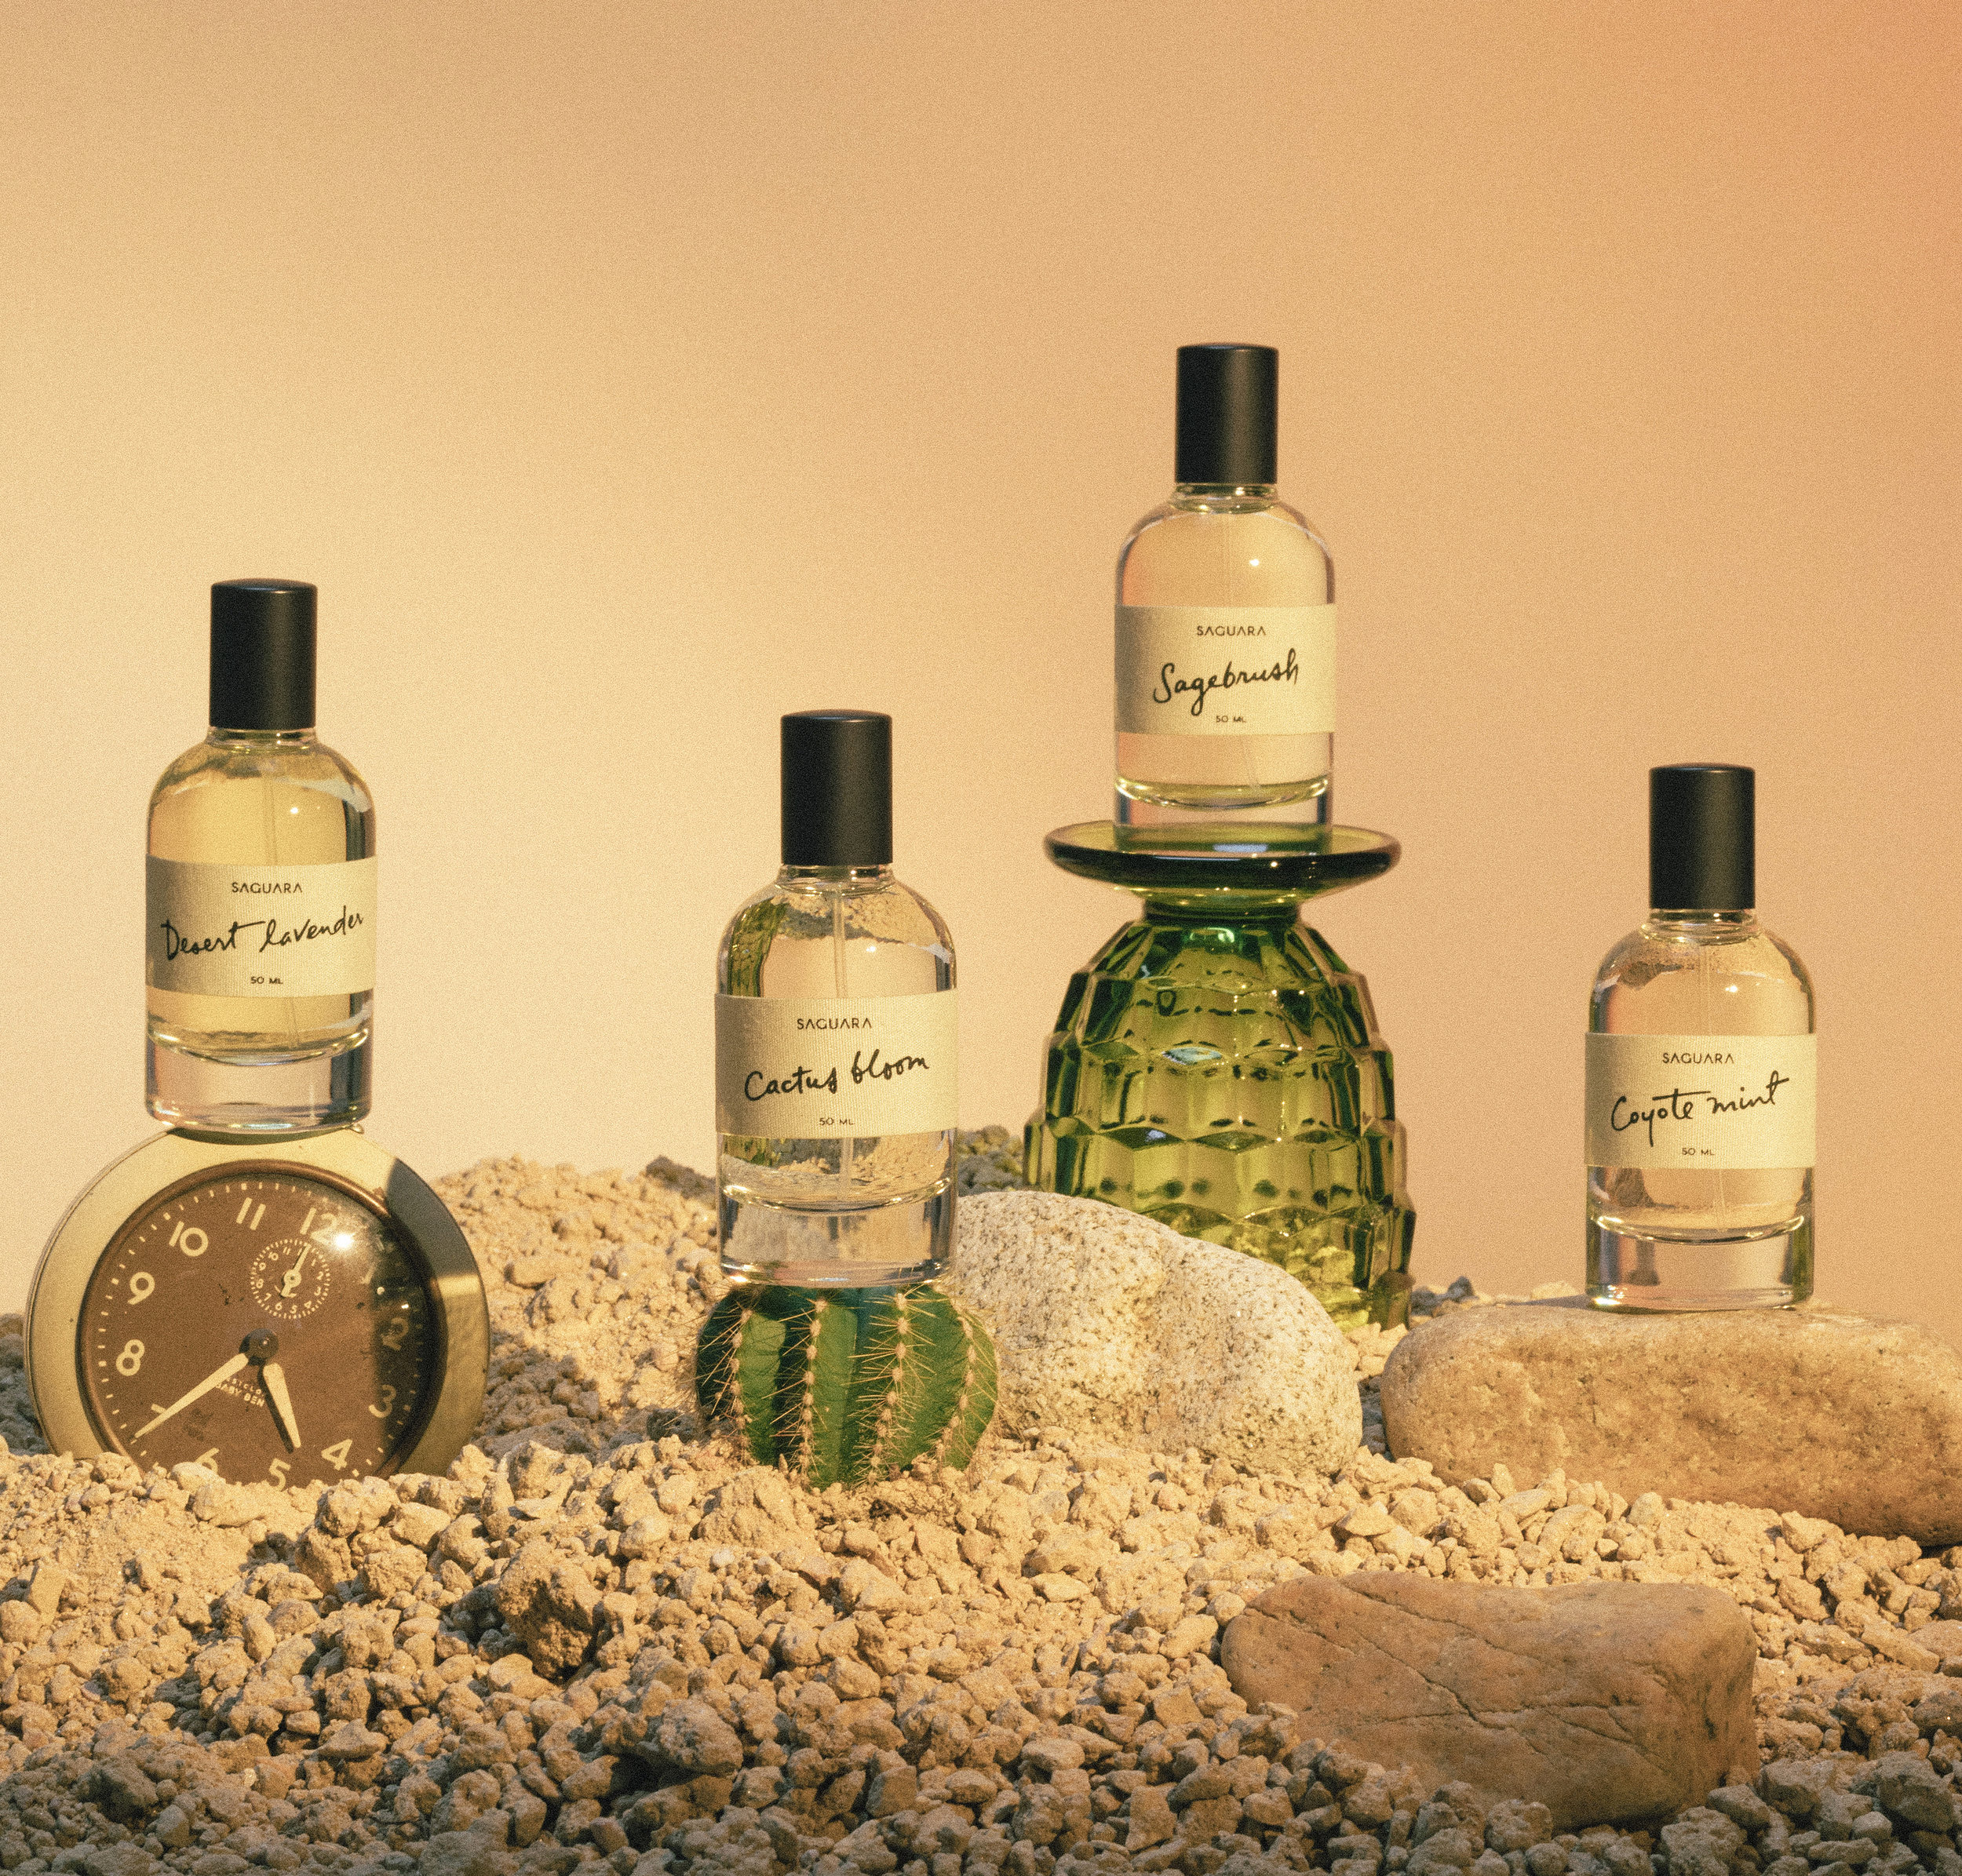 THE PERFUME OF DESERT FLORA  Moved by the stillness of the California Desert, SAGUARA PERFUMES pays homage to the redolence of this transcendent wasteland.  Saturated with delicate desert florals and native herbs, our handmade artisan scents capture the ancient spirit of this harsh yet harmonious landscape.